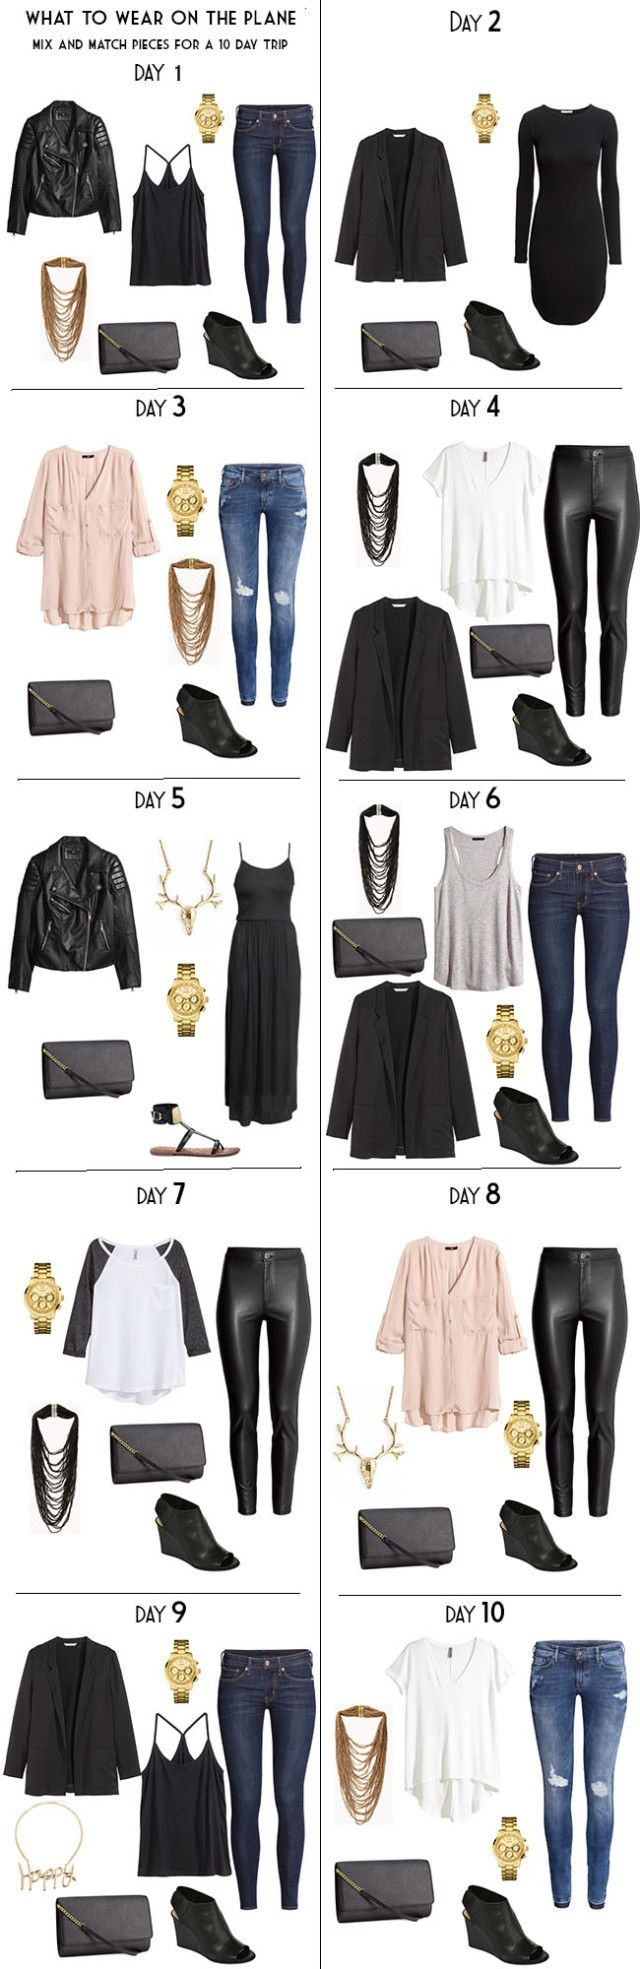 6 Day to Night Outfits ideas  day to night outfits, night